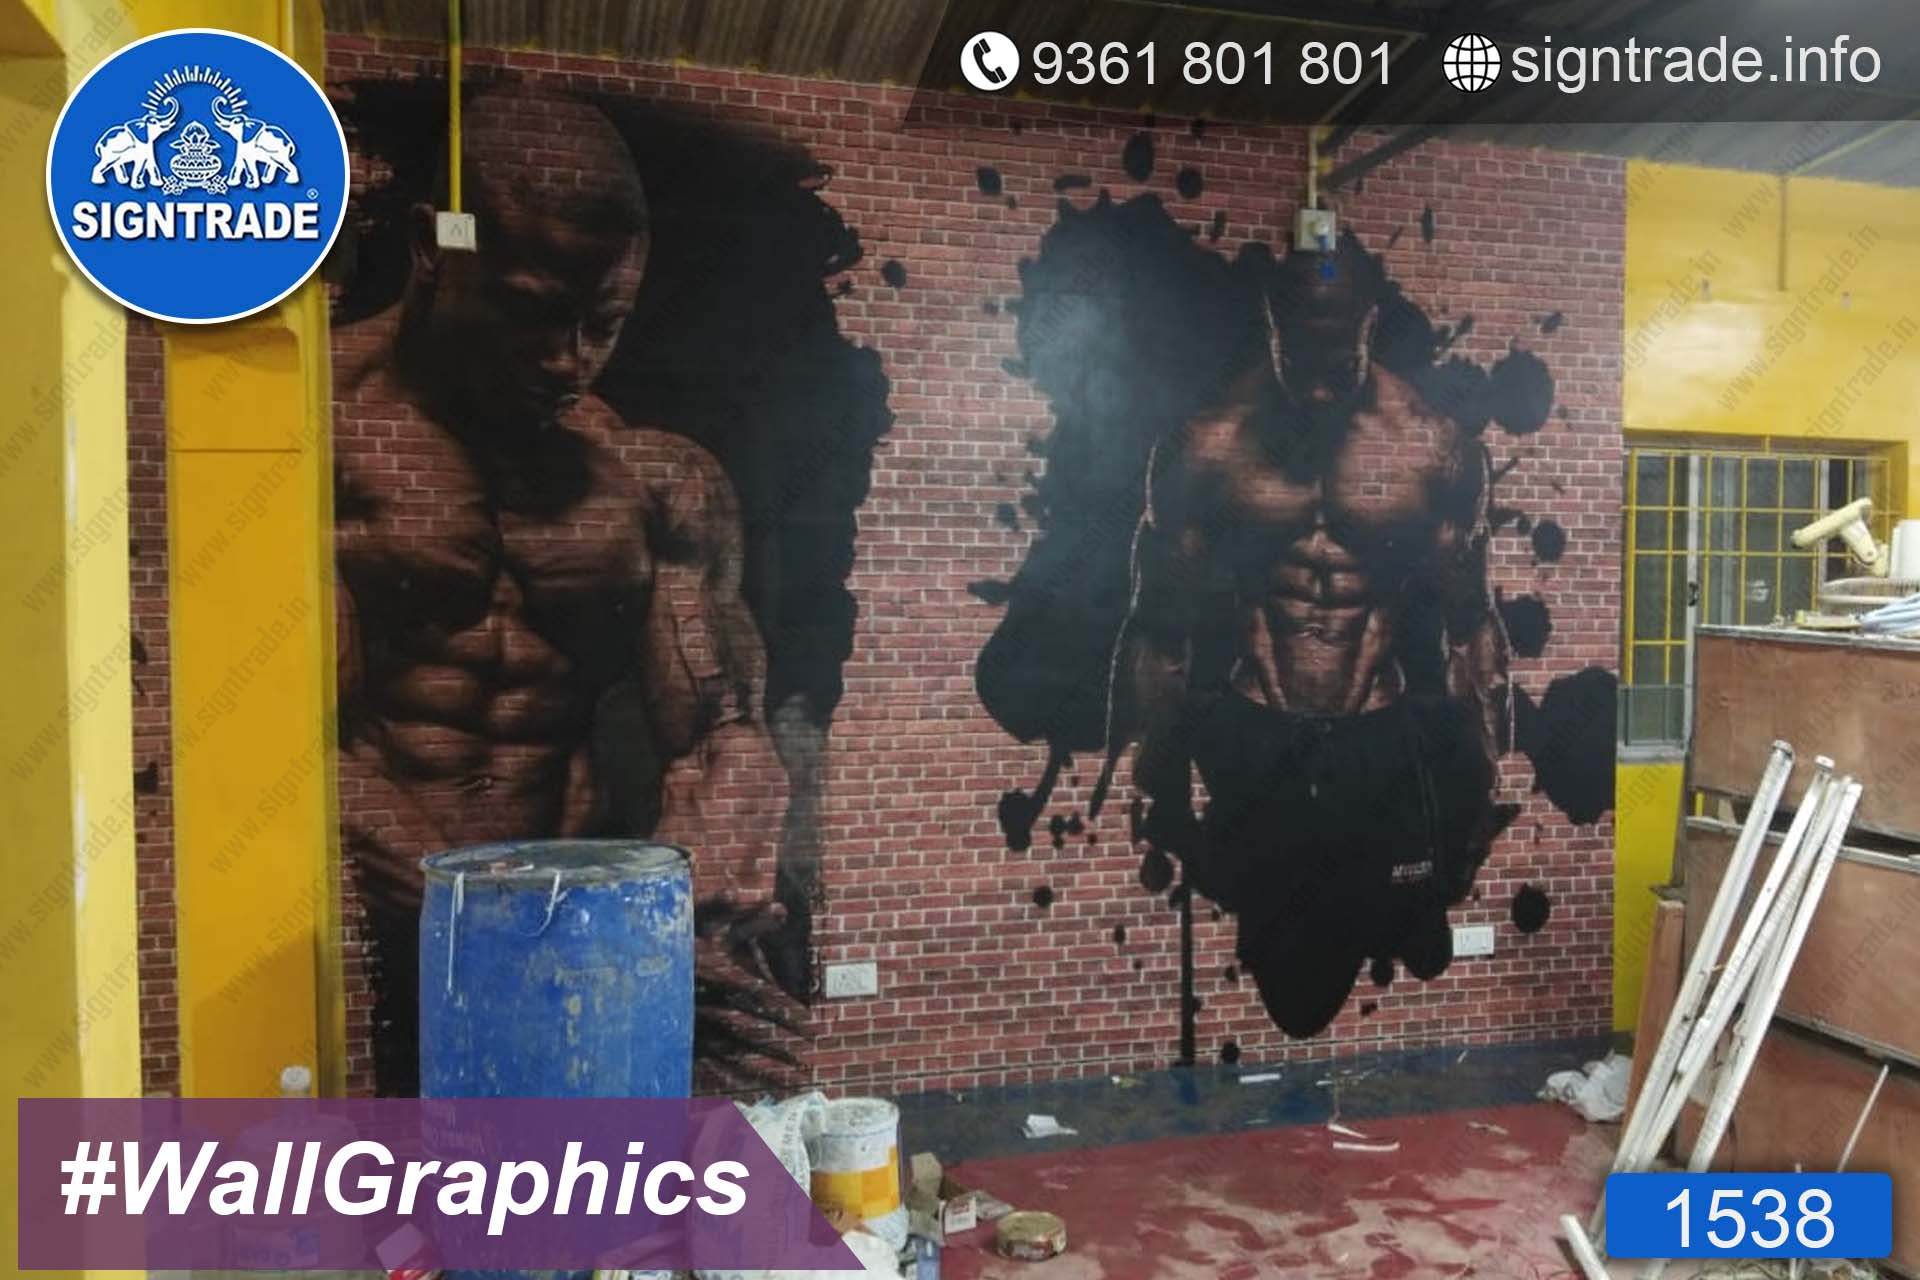 Global Gym - Chennai - SIGNTRADE - Wall Graphics - Vinyl Graphics on Wall - Digital Printing Services in Chennai